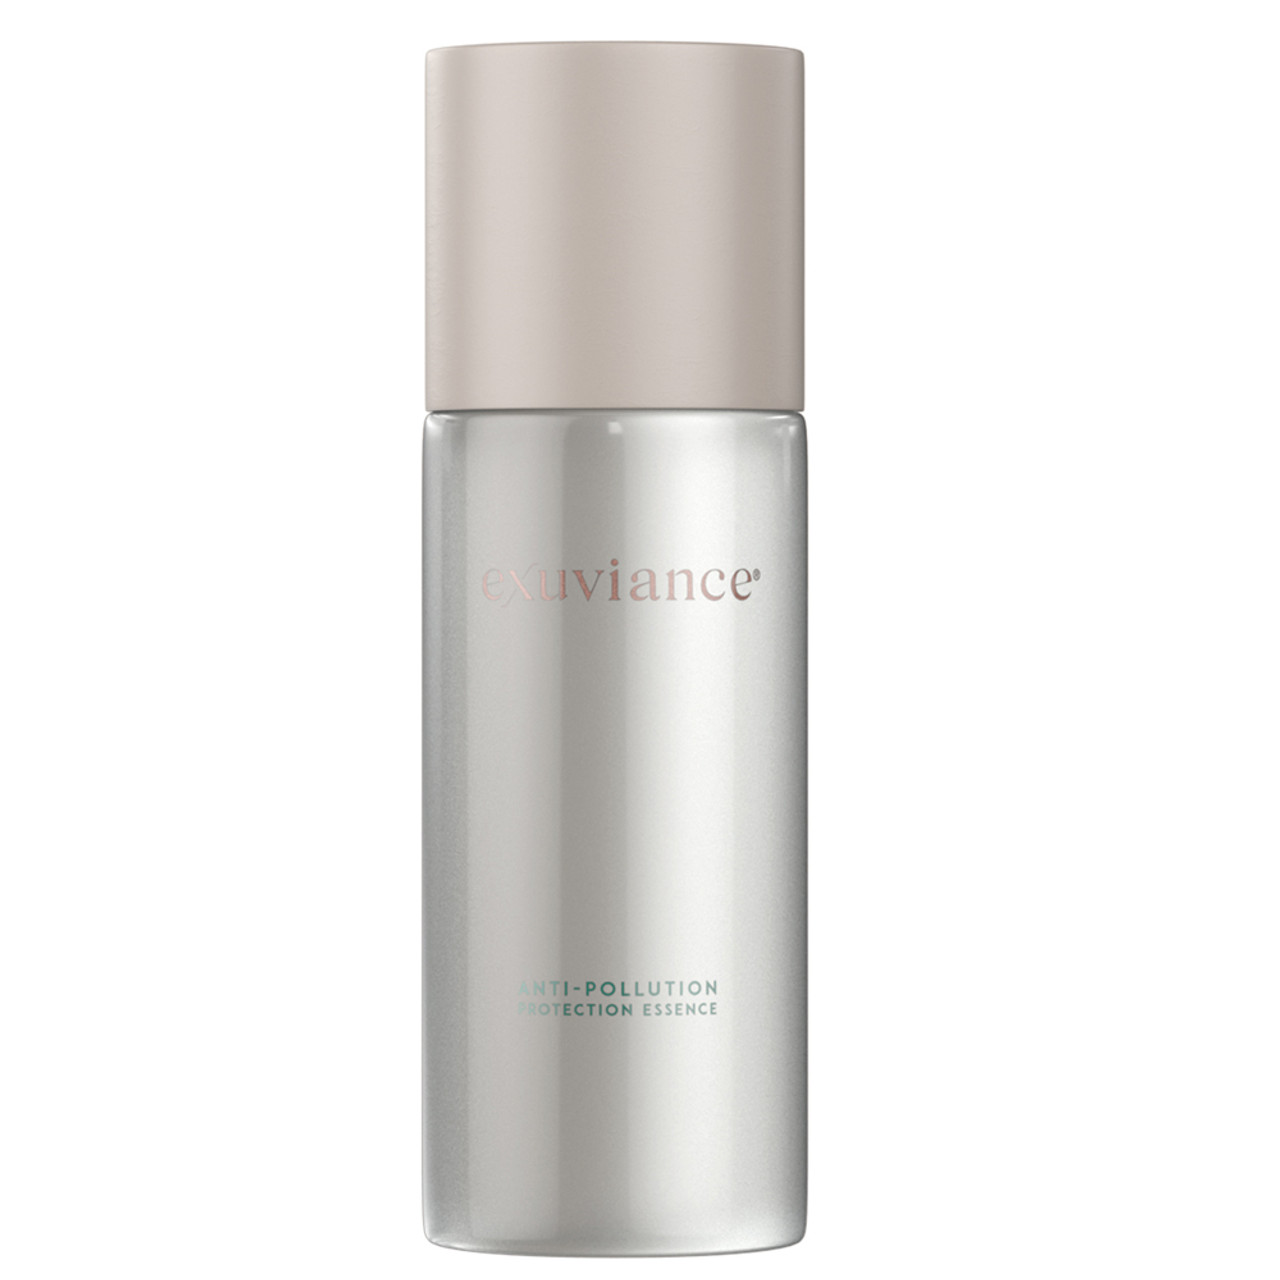 Exuviance Anti-Pollution Protection Essence (discontinued) BeautifiedYou.com